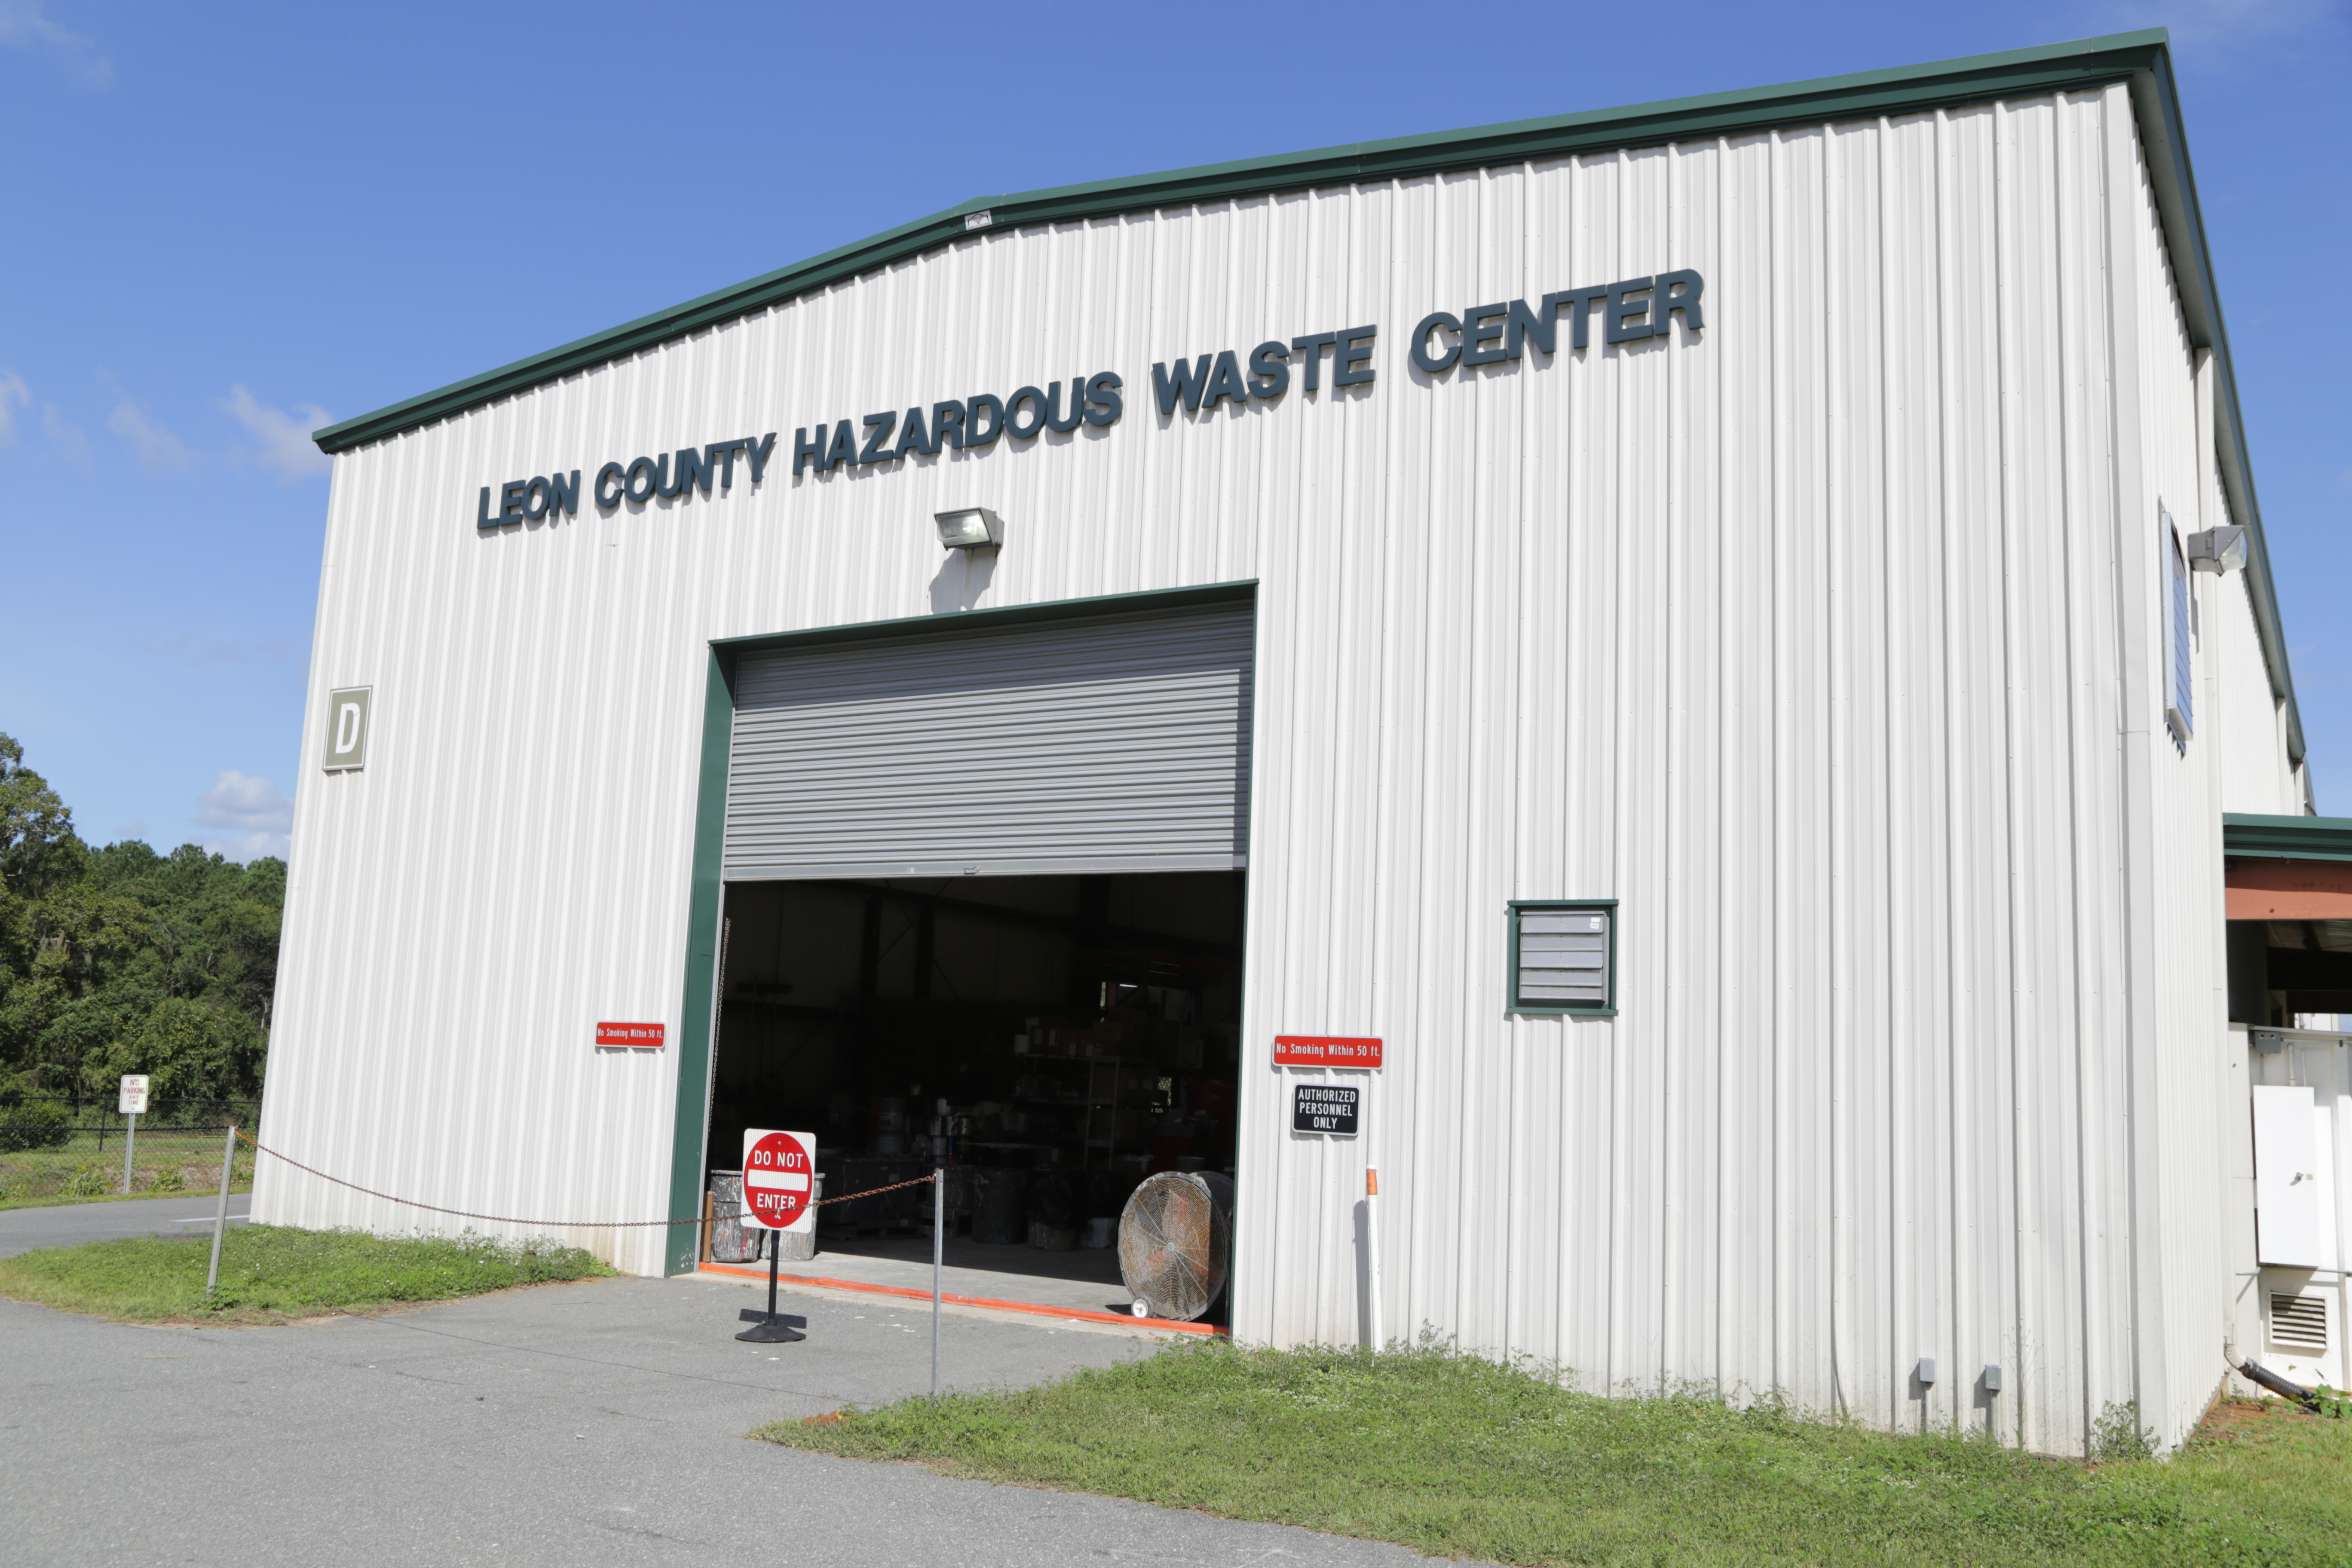 Leon County Hazardous Waste Center